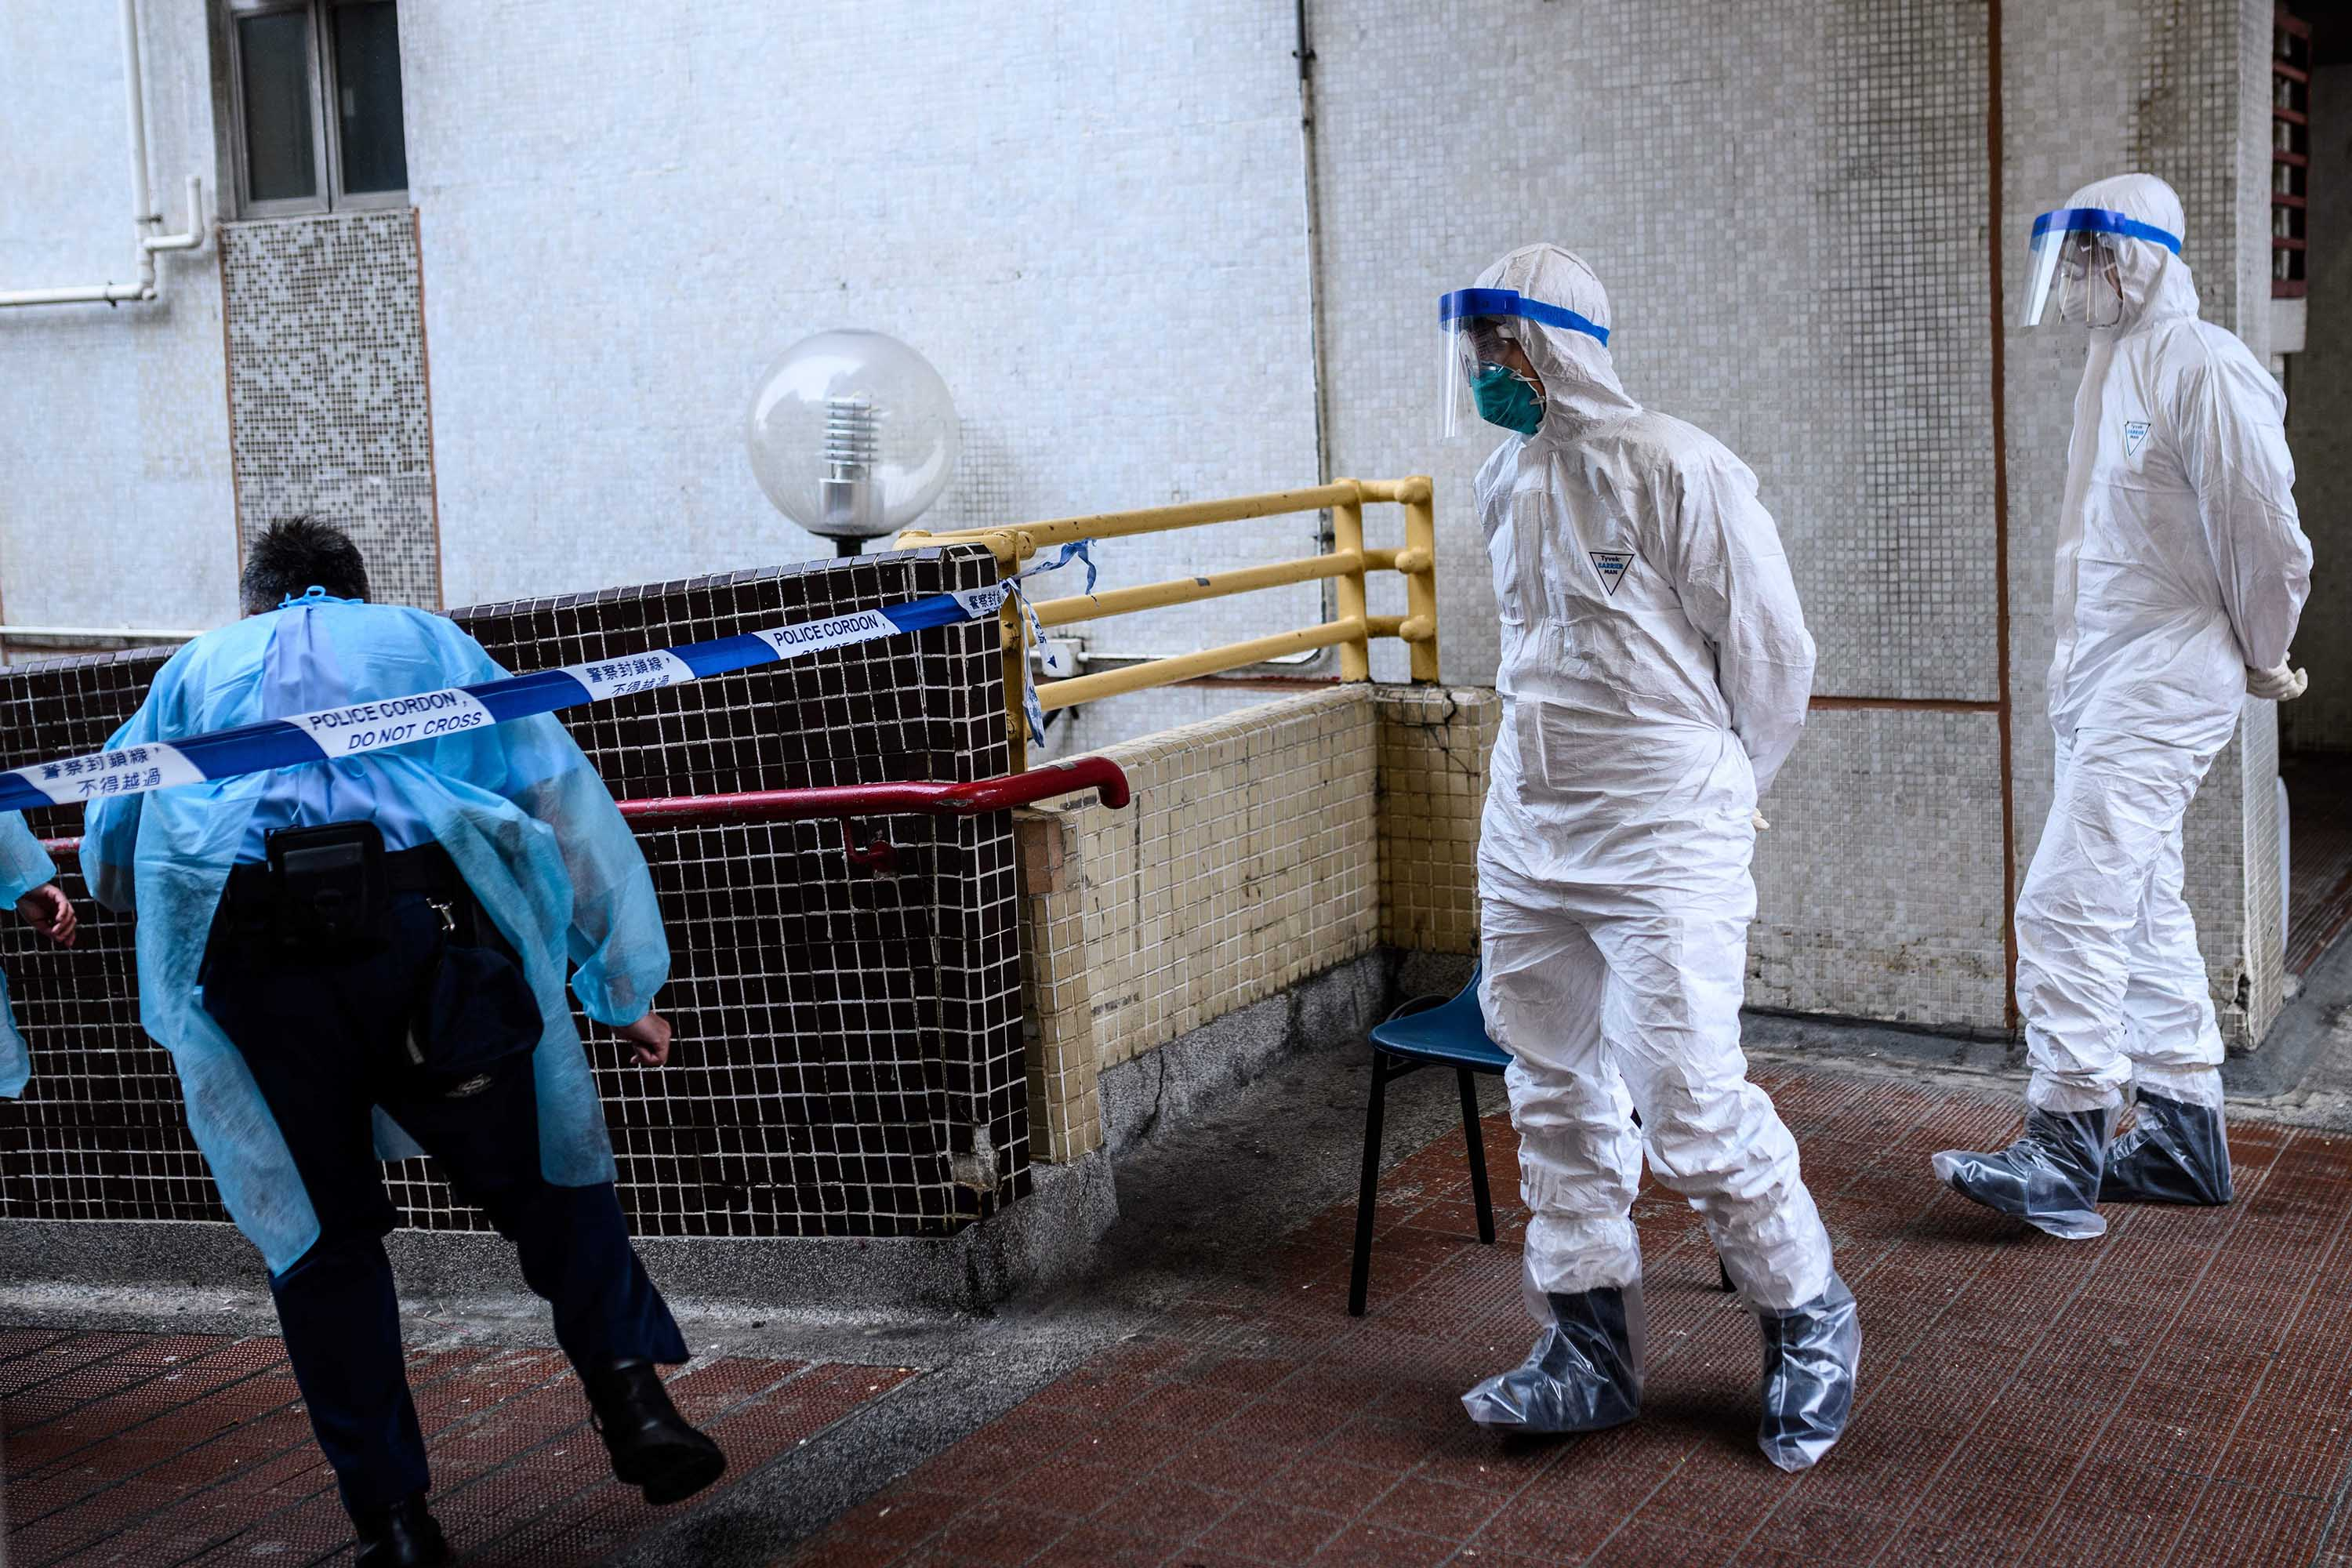 Police officers wearing protective gear are seen near a cordon outside Hong Mei House in Hong Kong on February 11, where some coronavirus cases were confirmed.